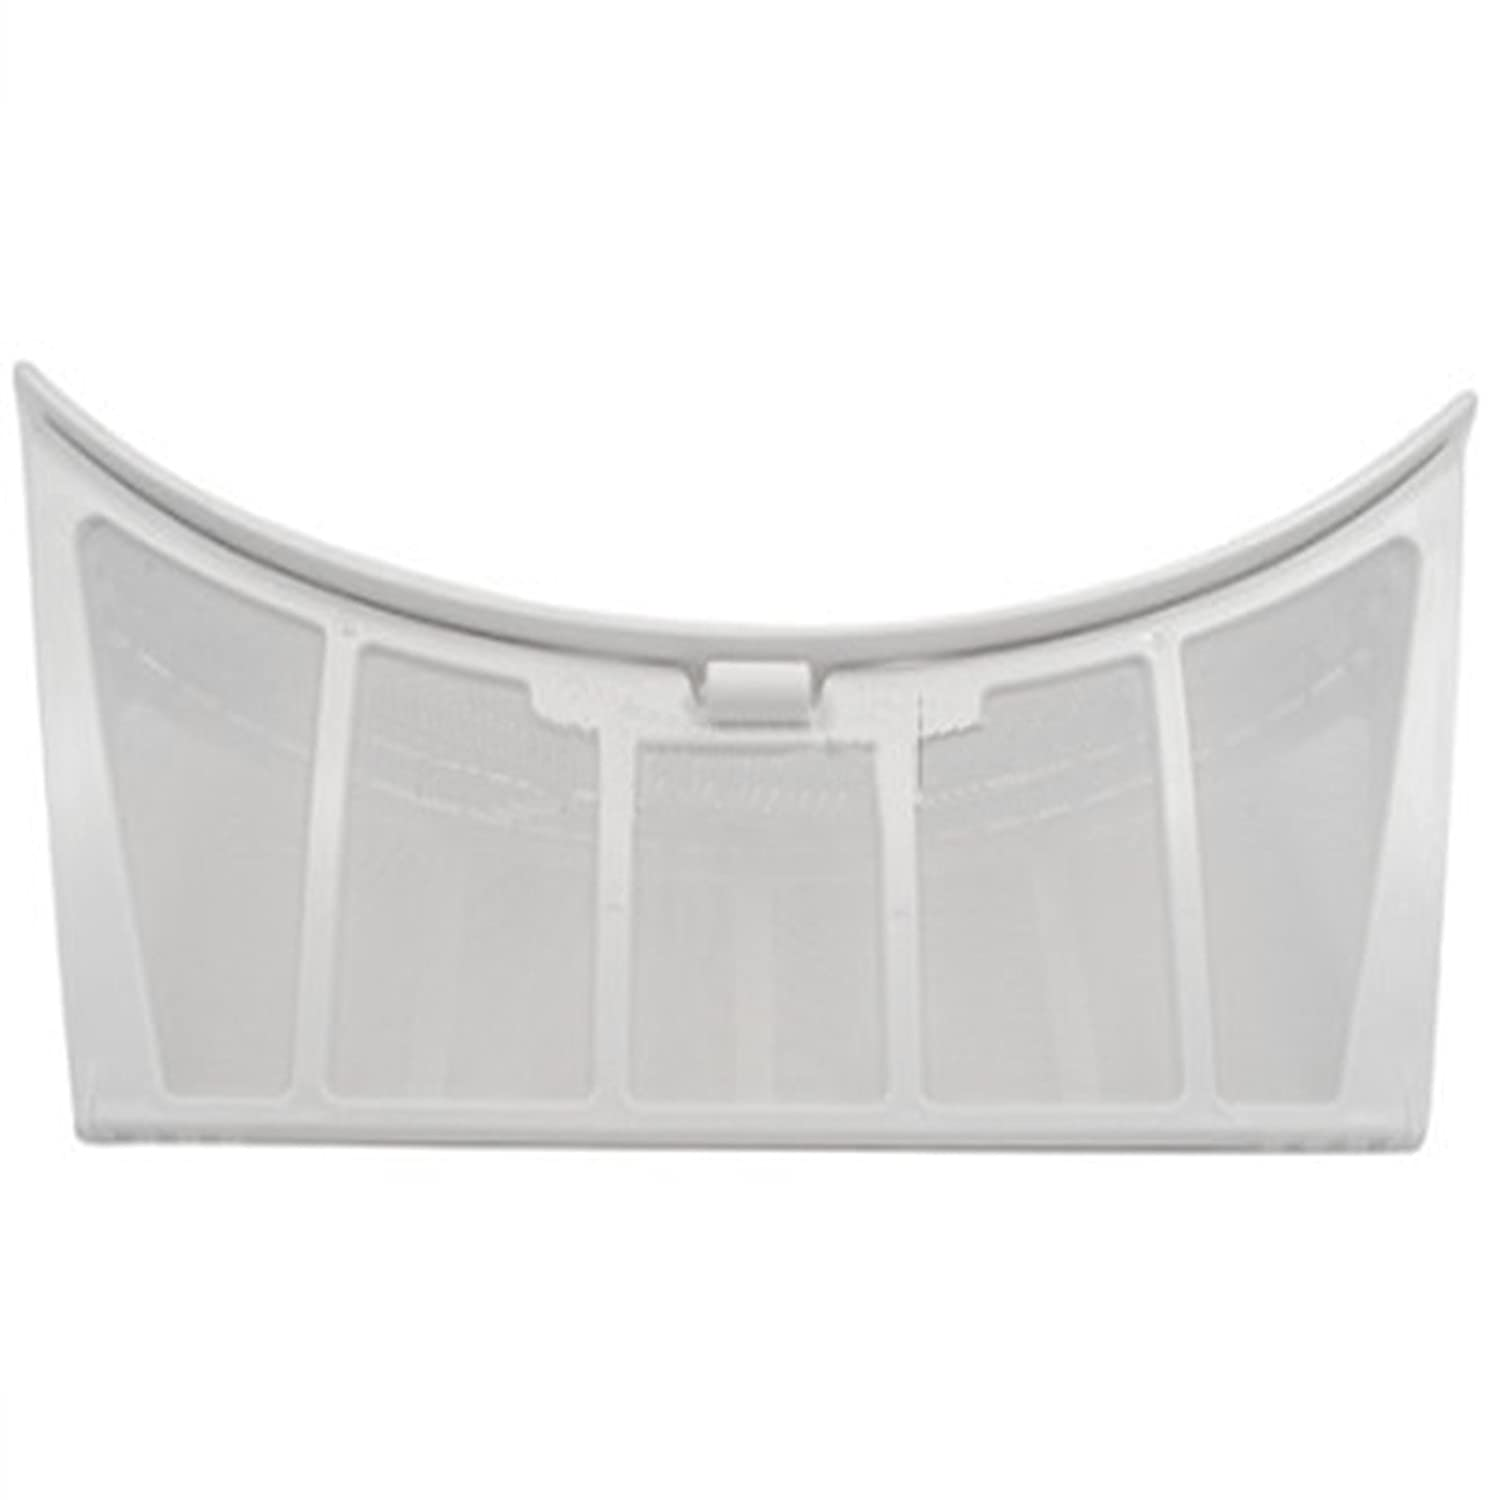 Spares2go Lint Screen/Fluff Filter Pocket Cage for John Lewis JLV09 Tumble Dryer